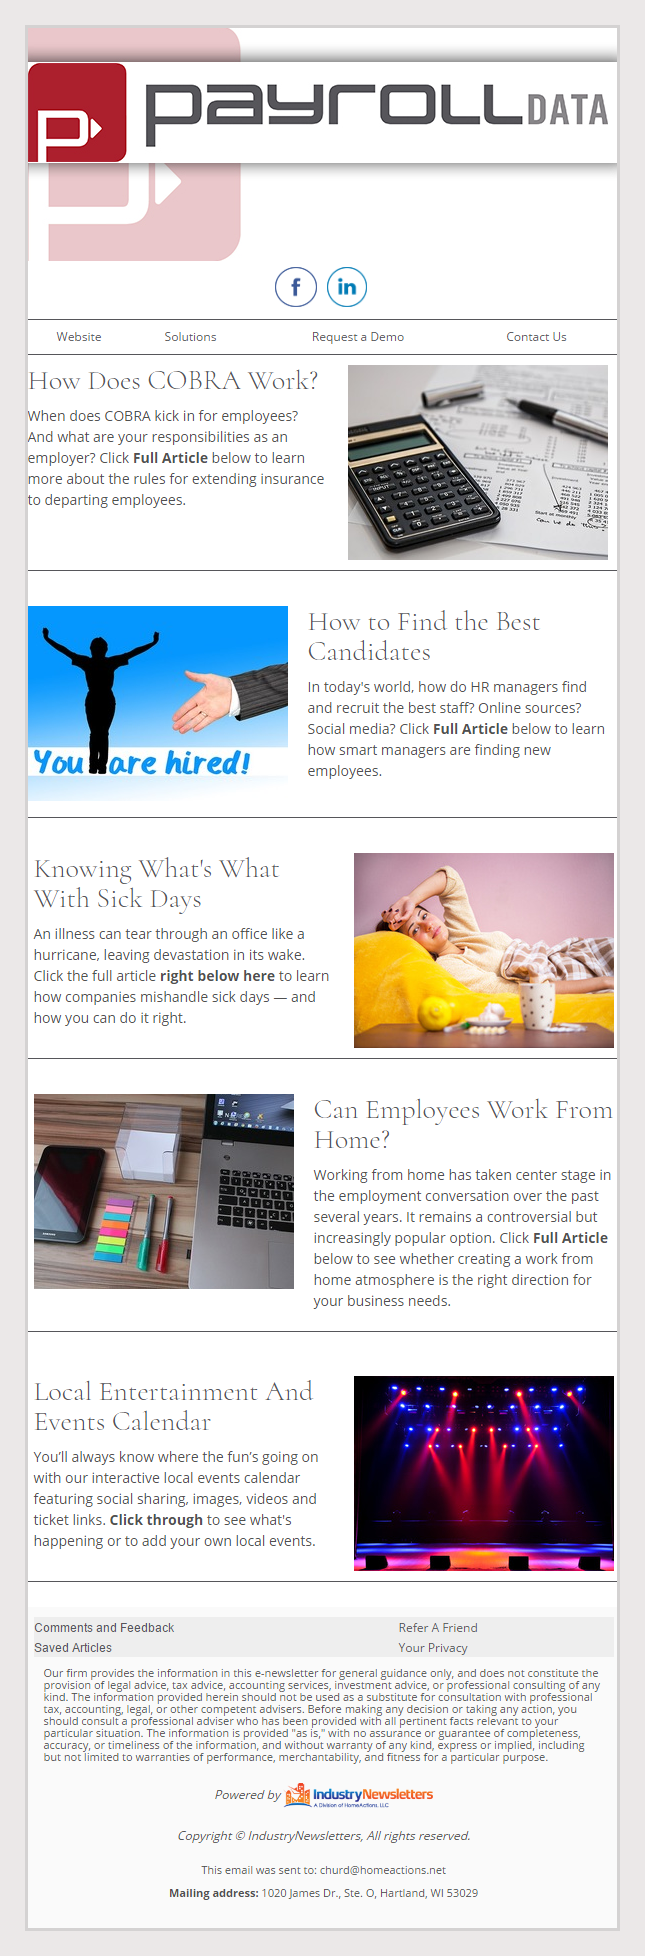 Payroll Data - IndustryNewsletters Sample Email Newsletter